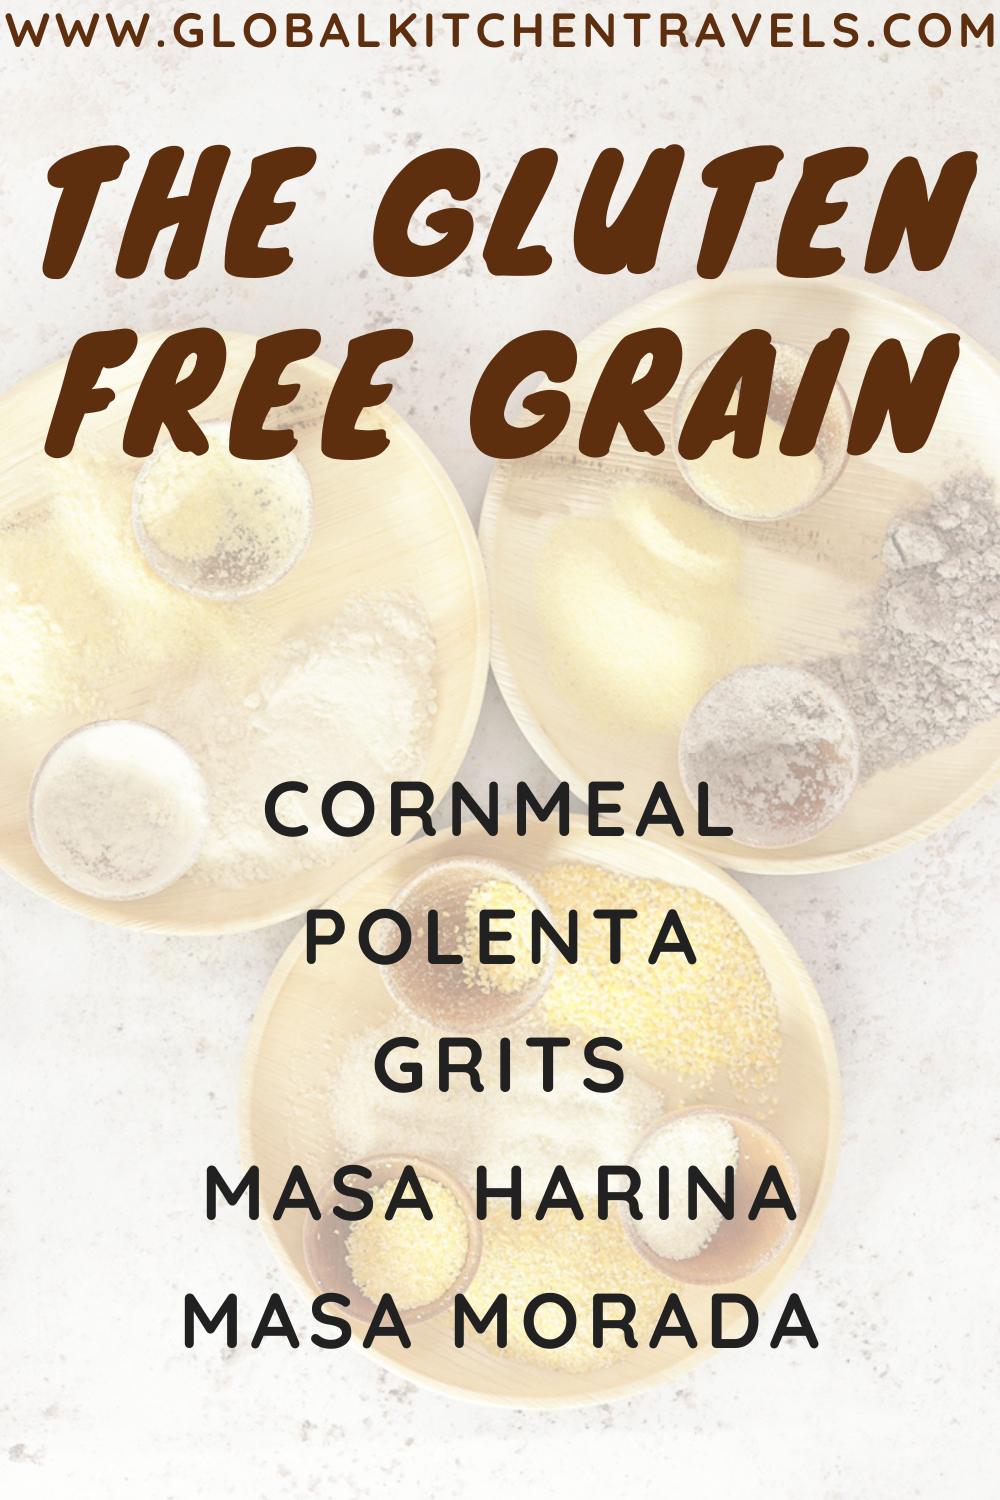 Text about cornmeal the gluten free grain